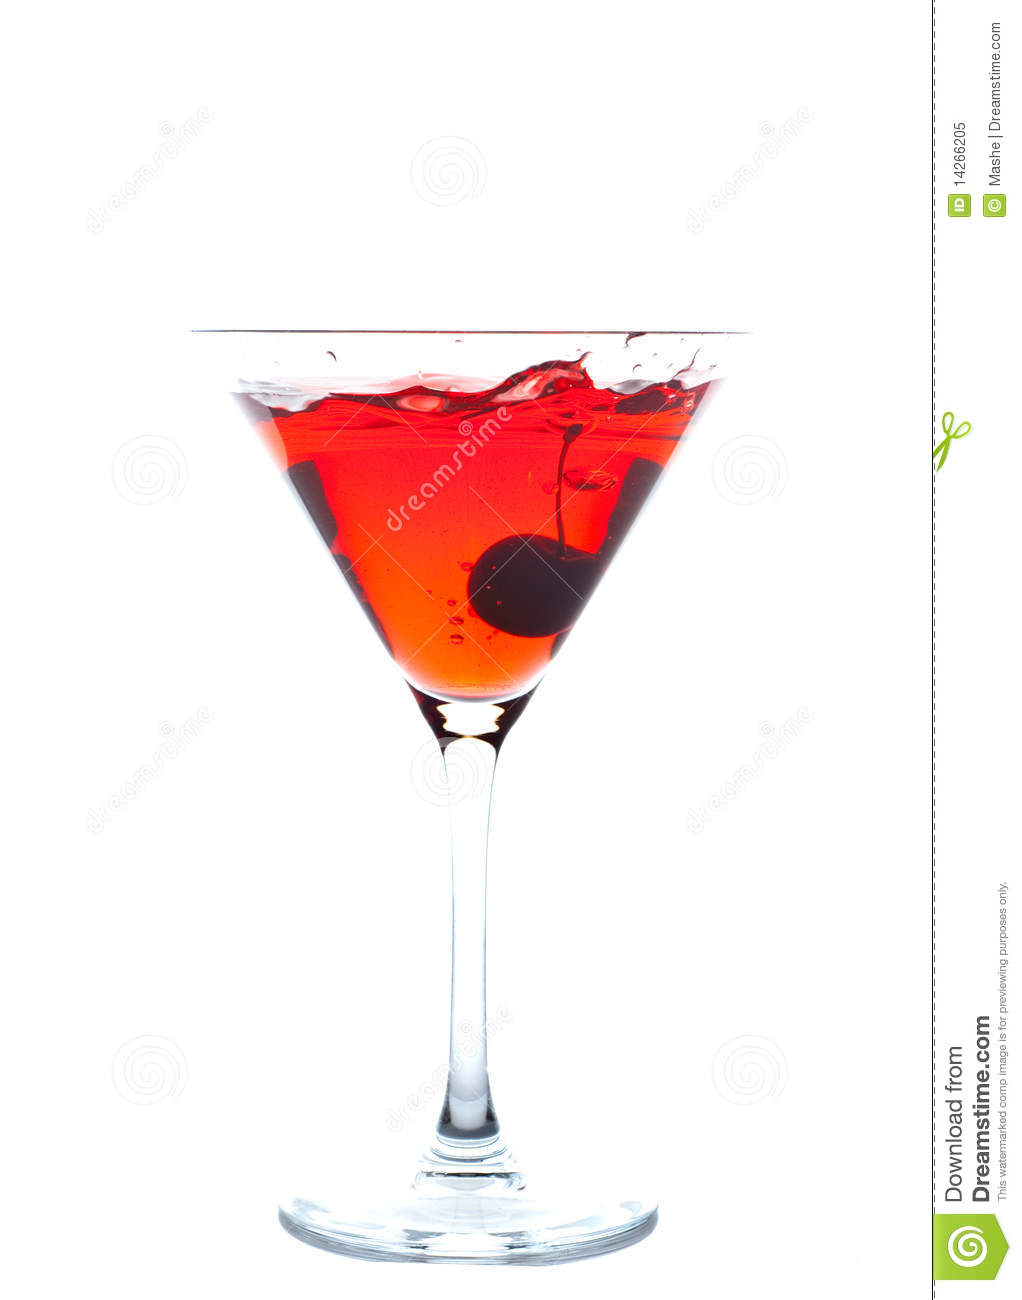 Cherry Blossom Cocktail Royalty Free Stock Photo - Image: 14266205